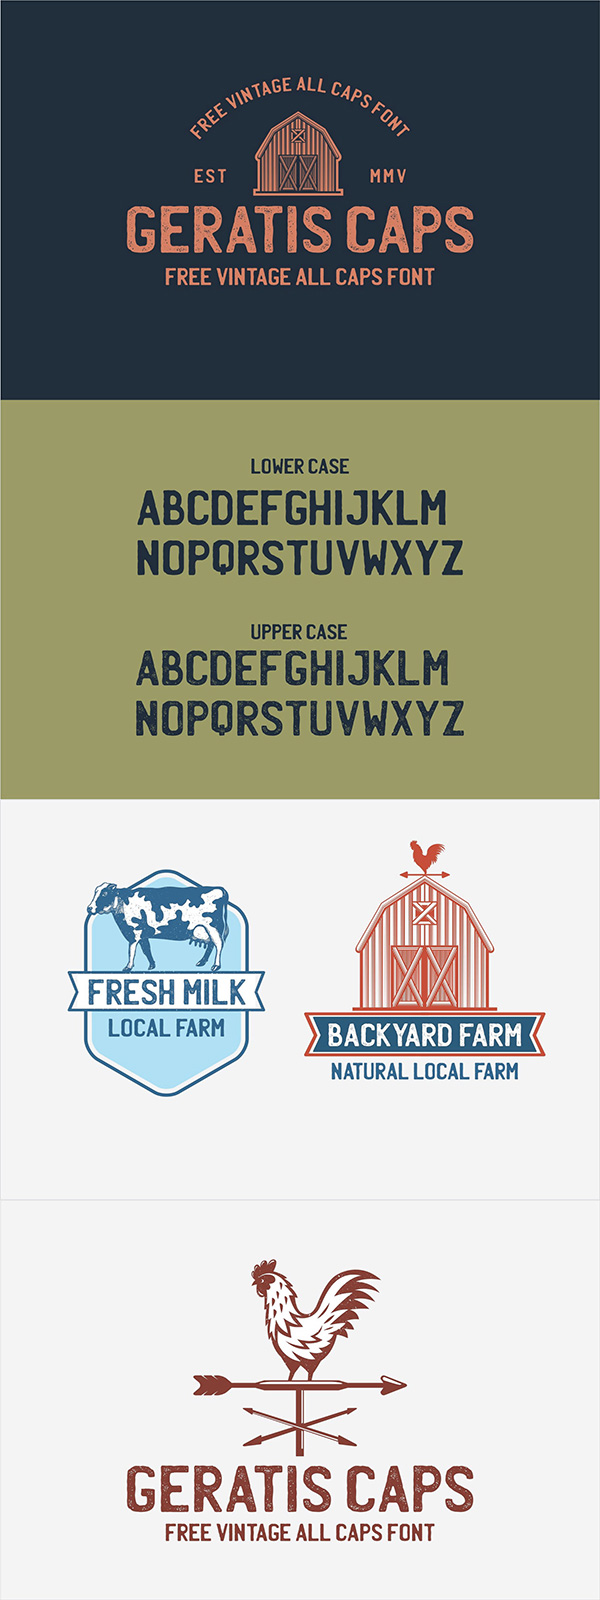 Geratis - Free Vintage All Caps Font